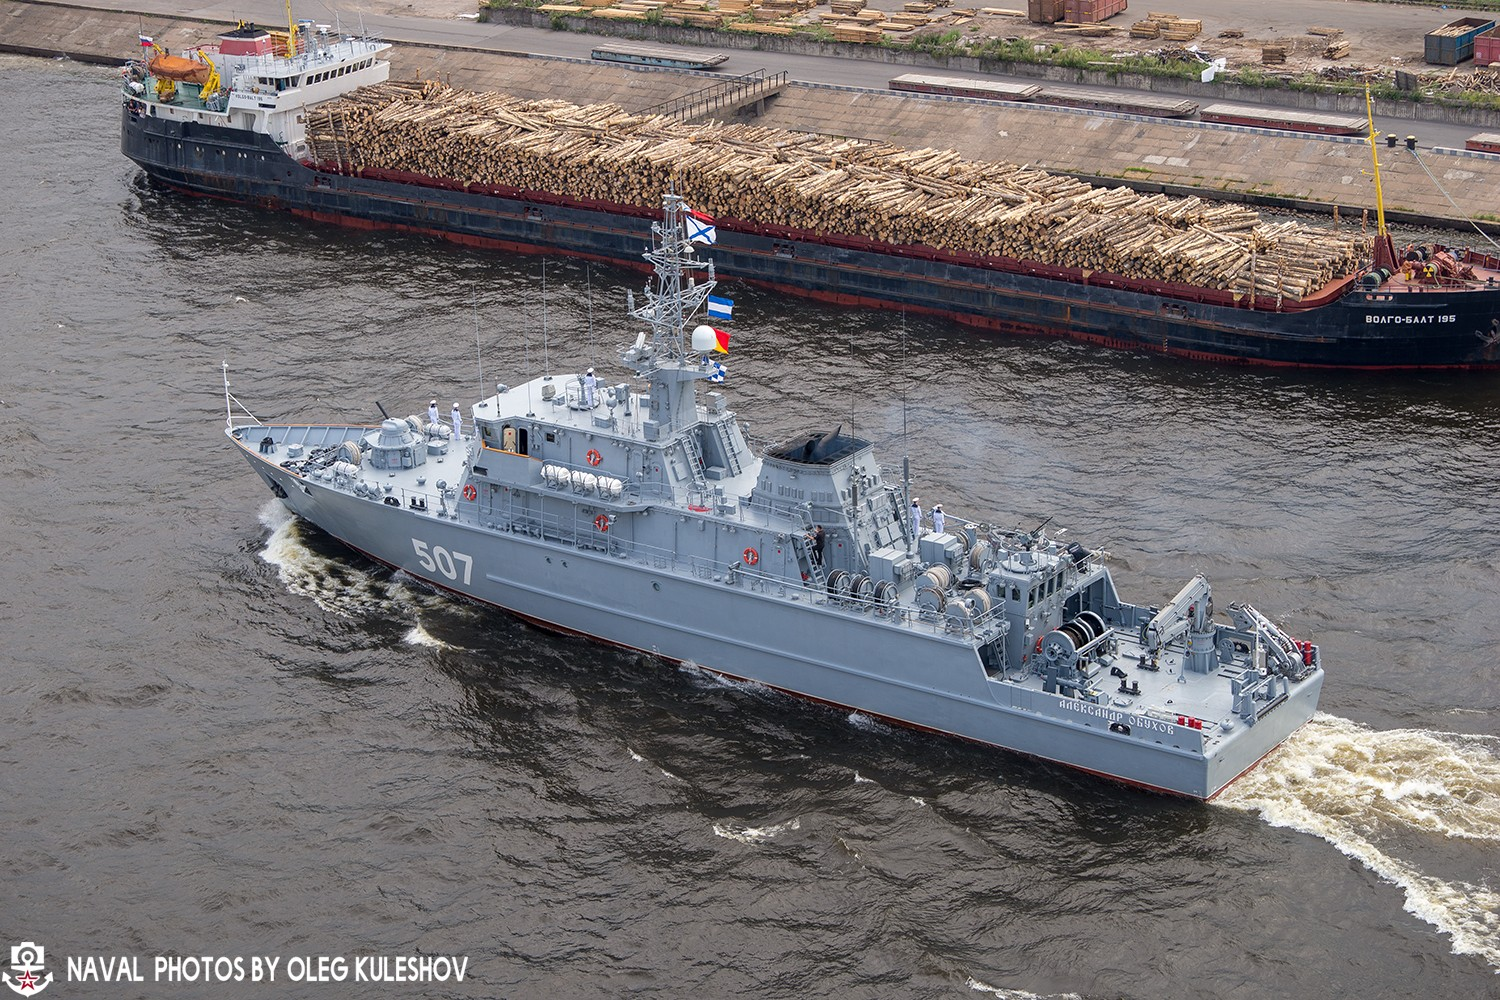 Minesweeper Ivan Antonov went to the factory running tests 78